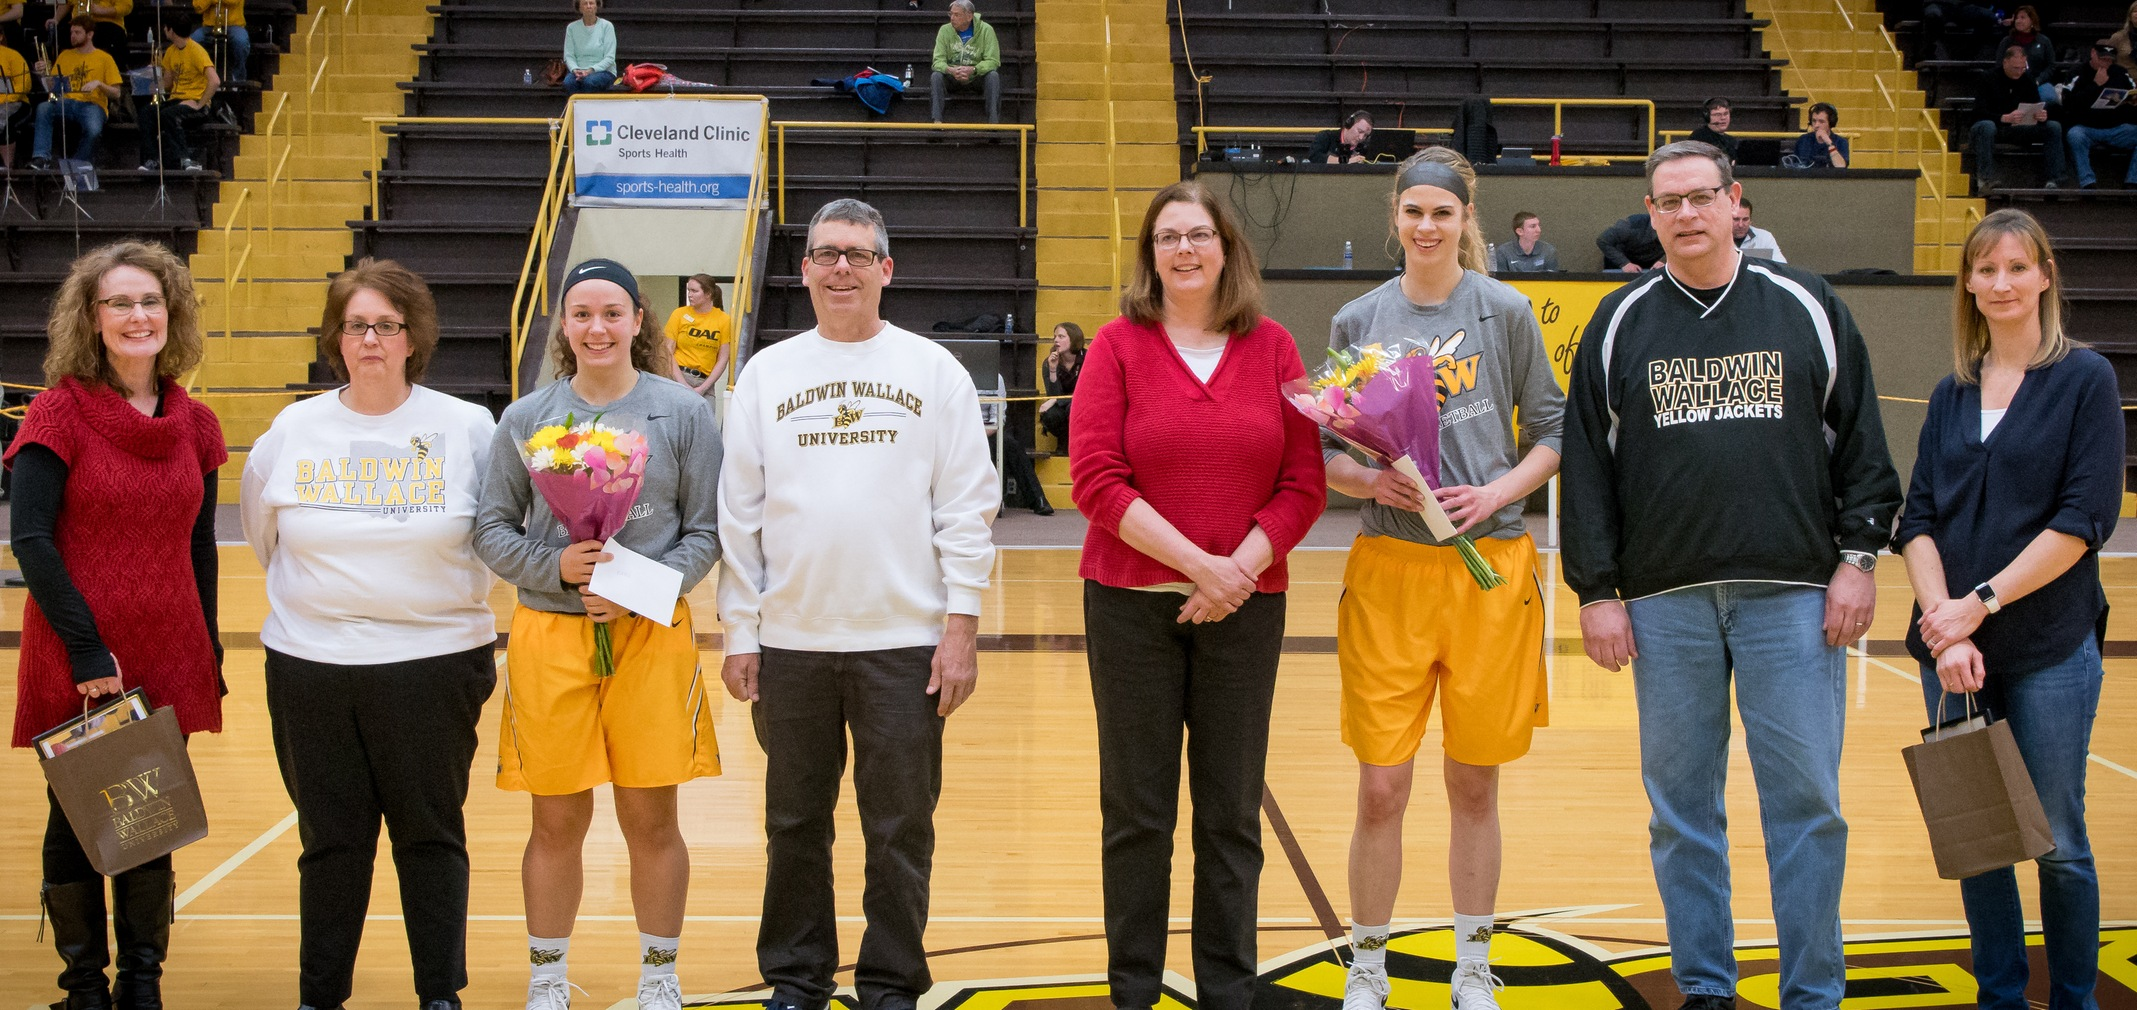 Seniors Katie Smith and Megan Schubert with their families (Photo courtesy of Jesse Kucewicz)